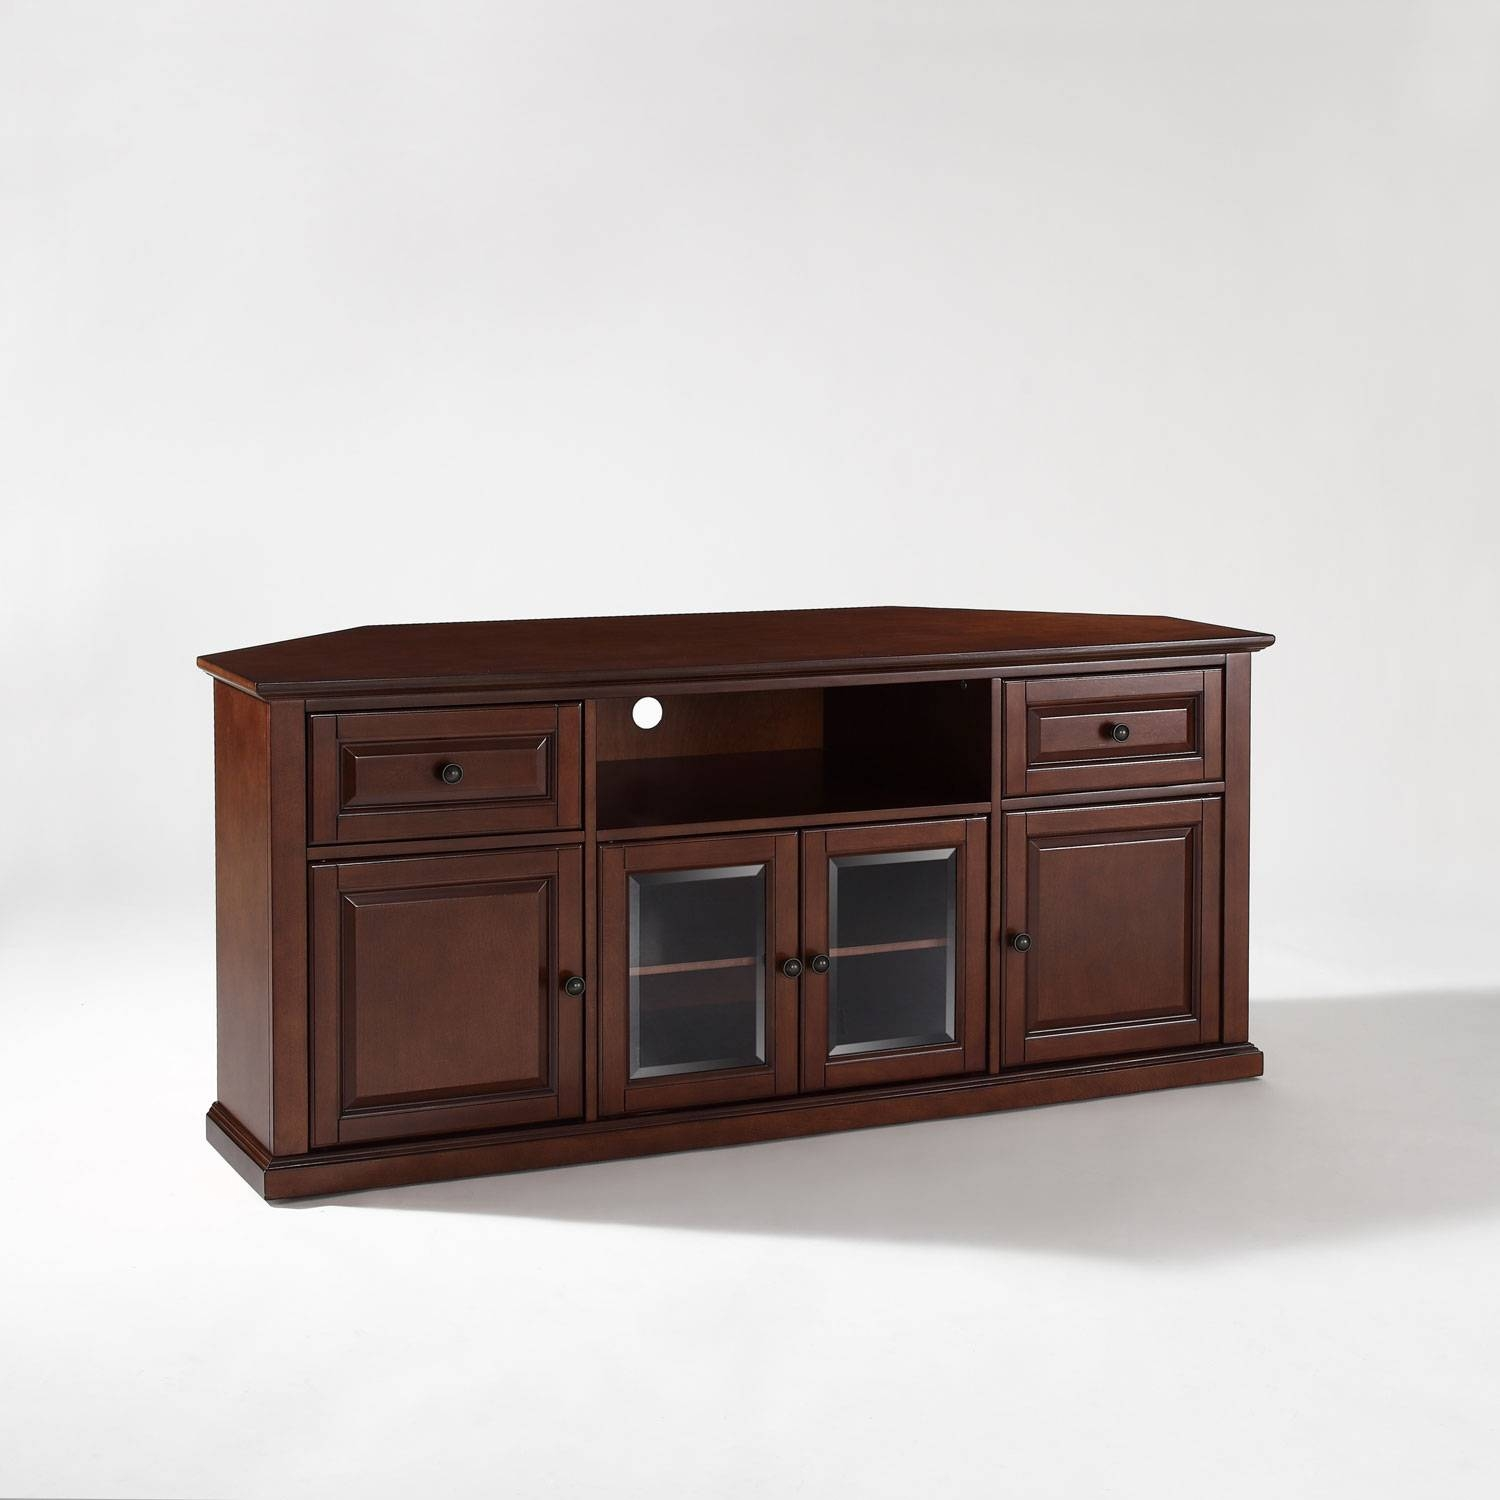 60 Inch Corner Tv Stand In Vintage Mahogany Crosley Furniture for Mahogany Tv Stands (Image 1 of 15)